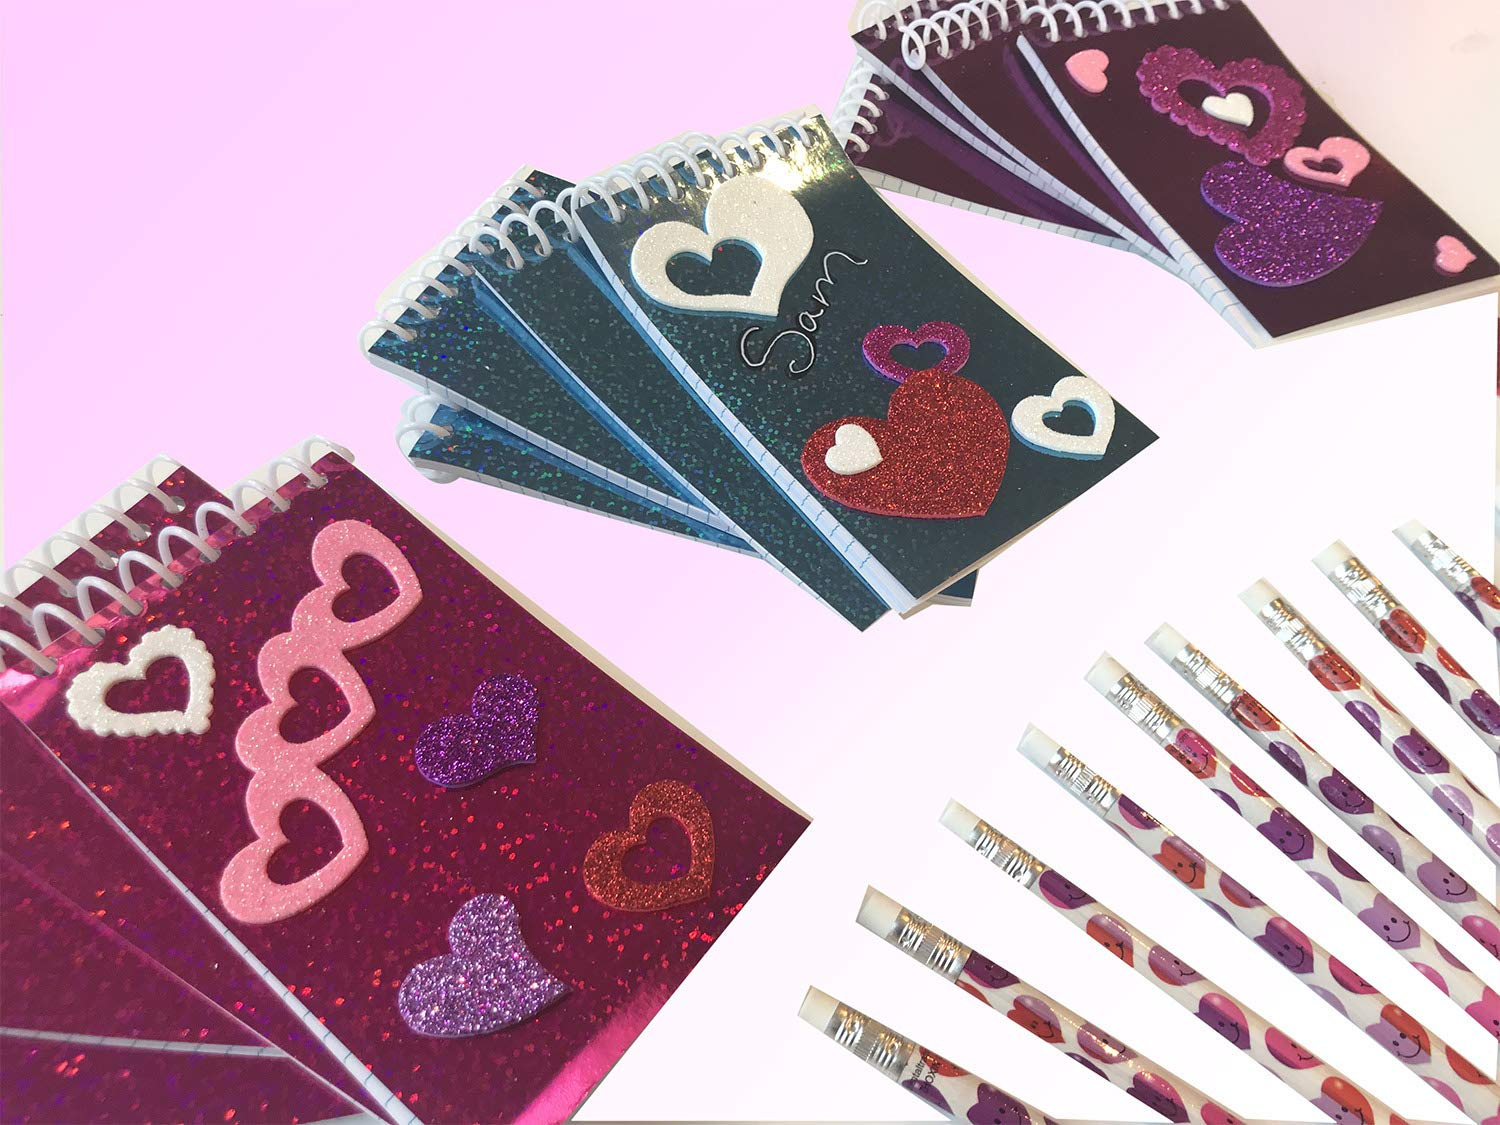 Sparkling Valentines Valentine Glittering Notepads 84 Pc Set Glitter Heart Stickers and Matching Heart Pencils Craft Set for 12